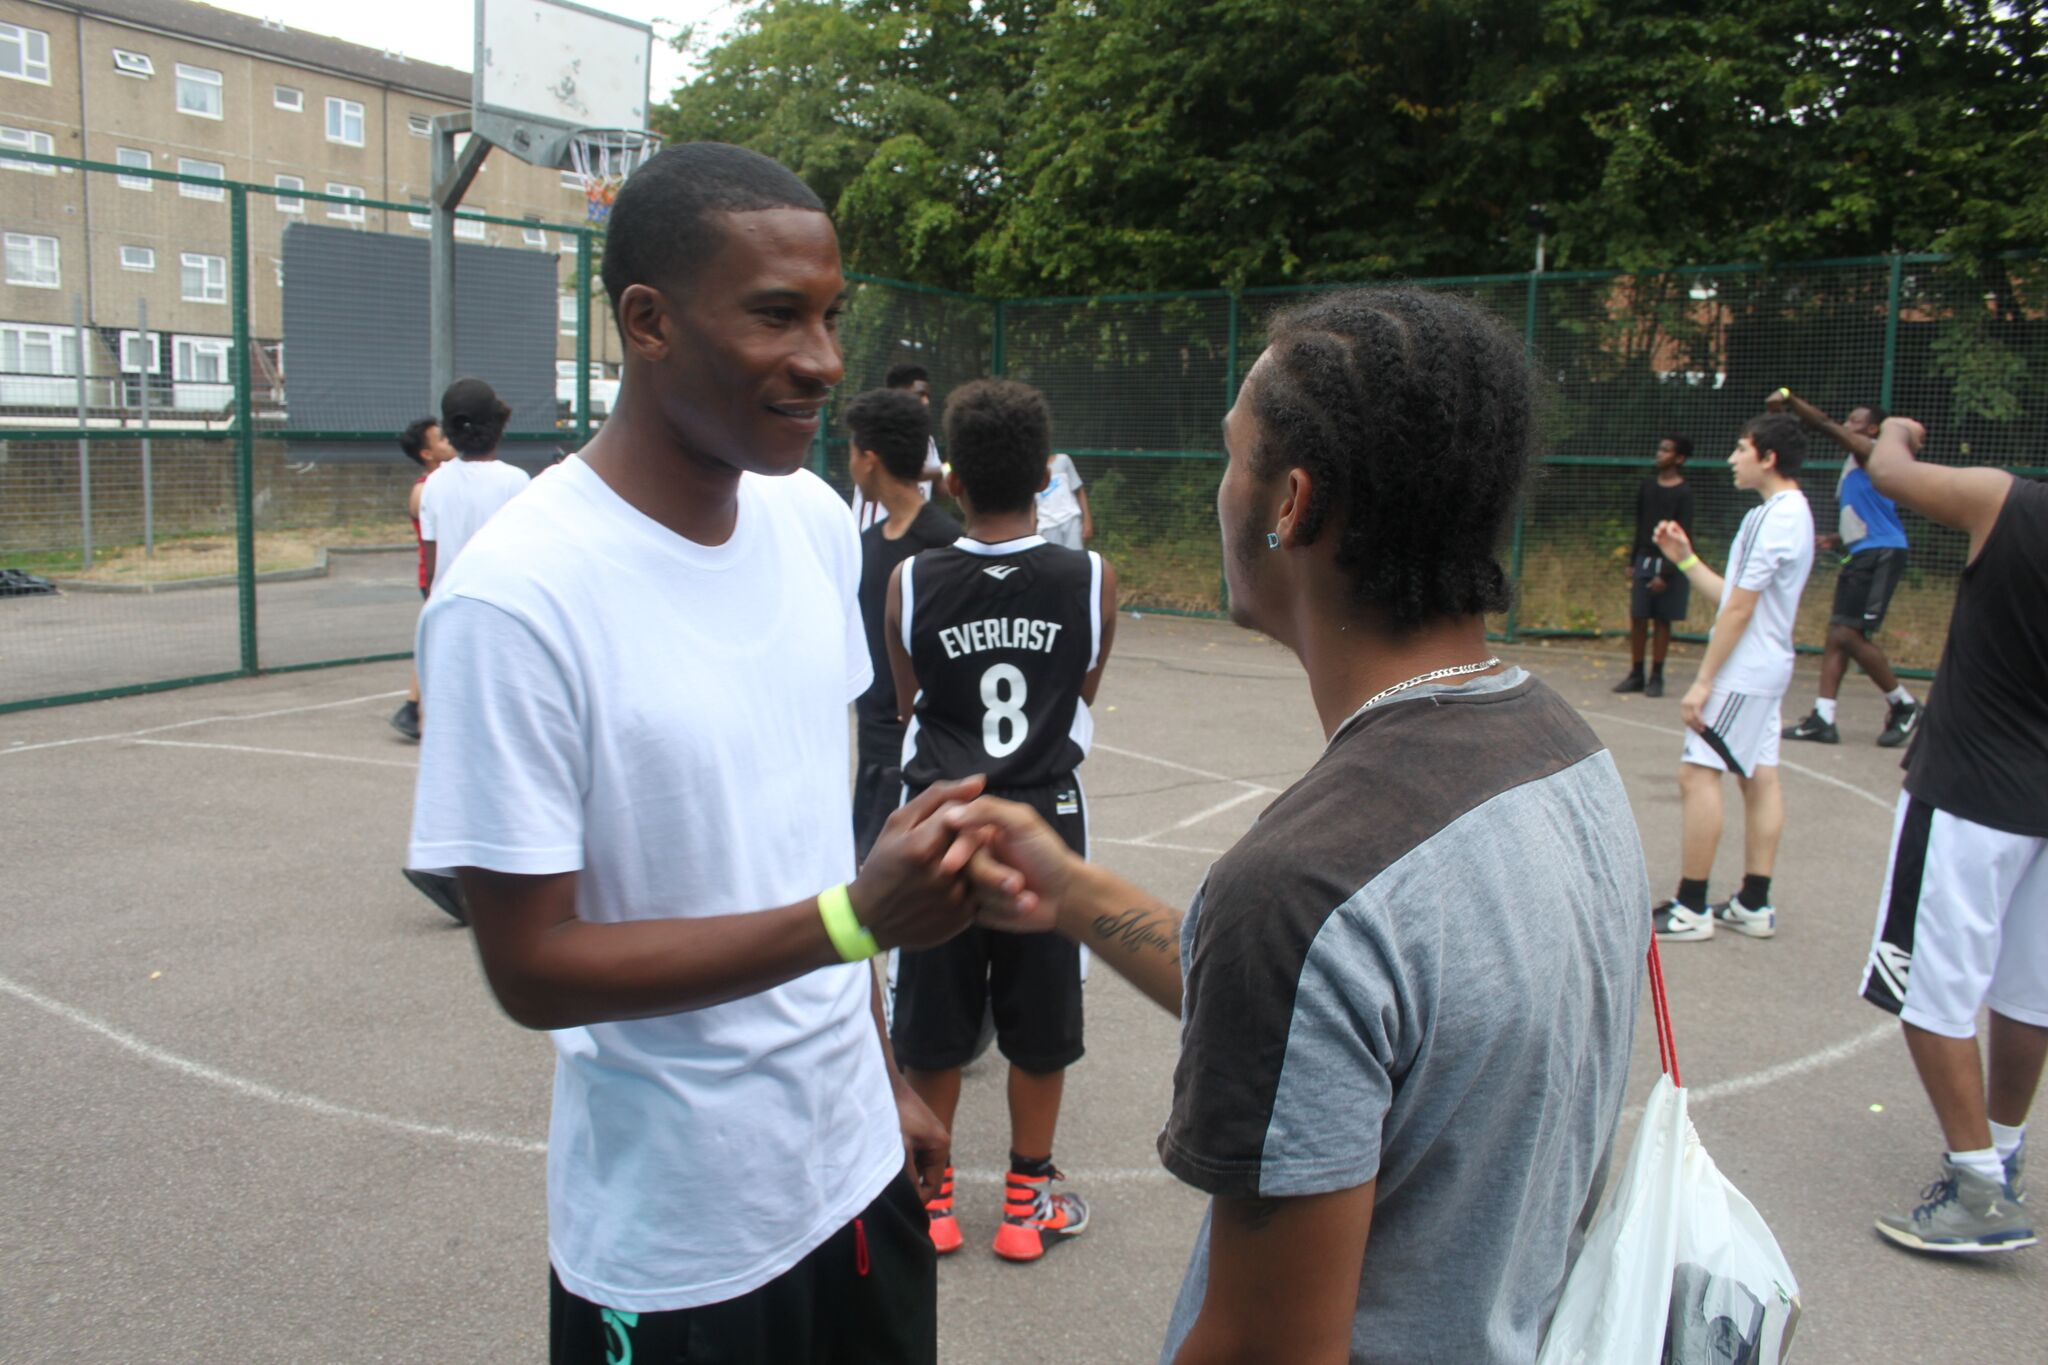 STUDIO N2 - A local partnership between Art Against Knives, The Grange Big Local and Barnet Homes to reduce serious youth violence and safeguard young people in the N2 community in London.